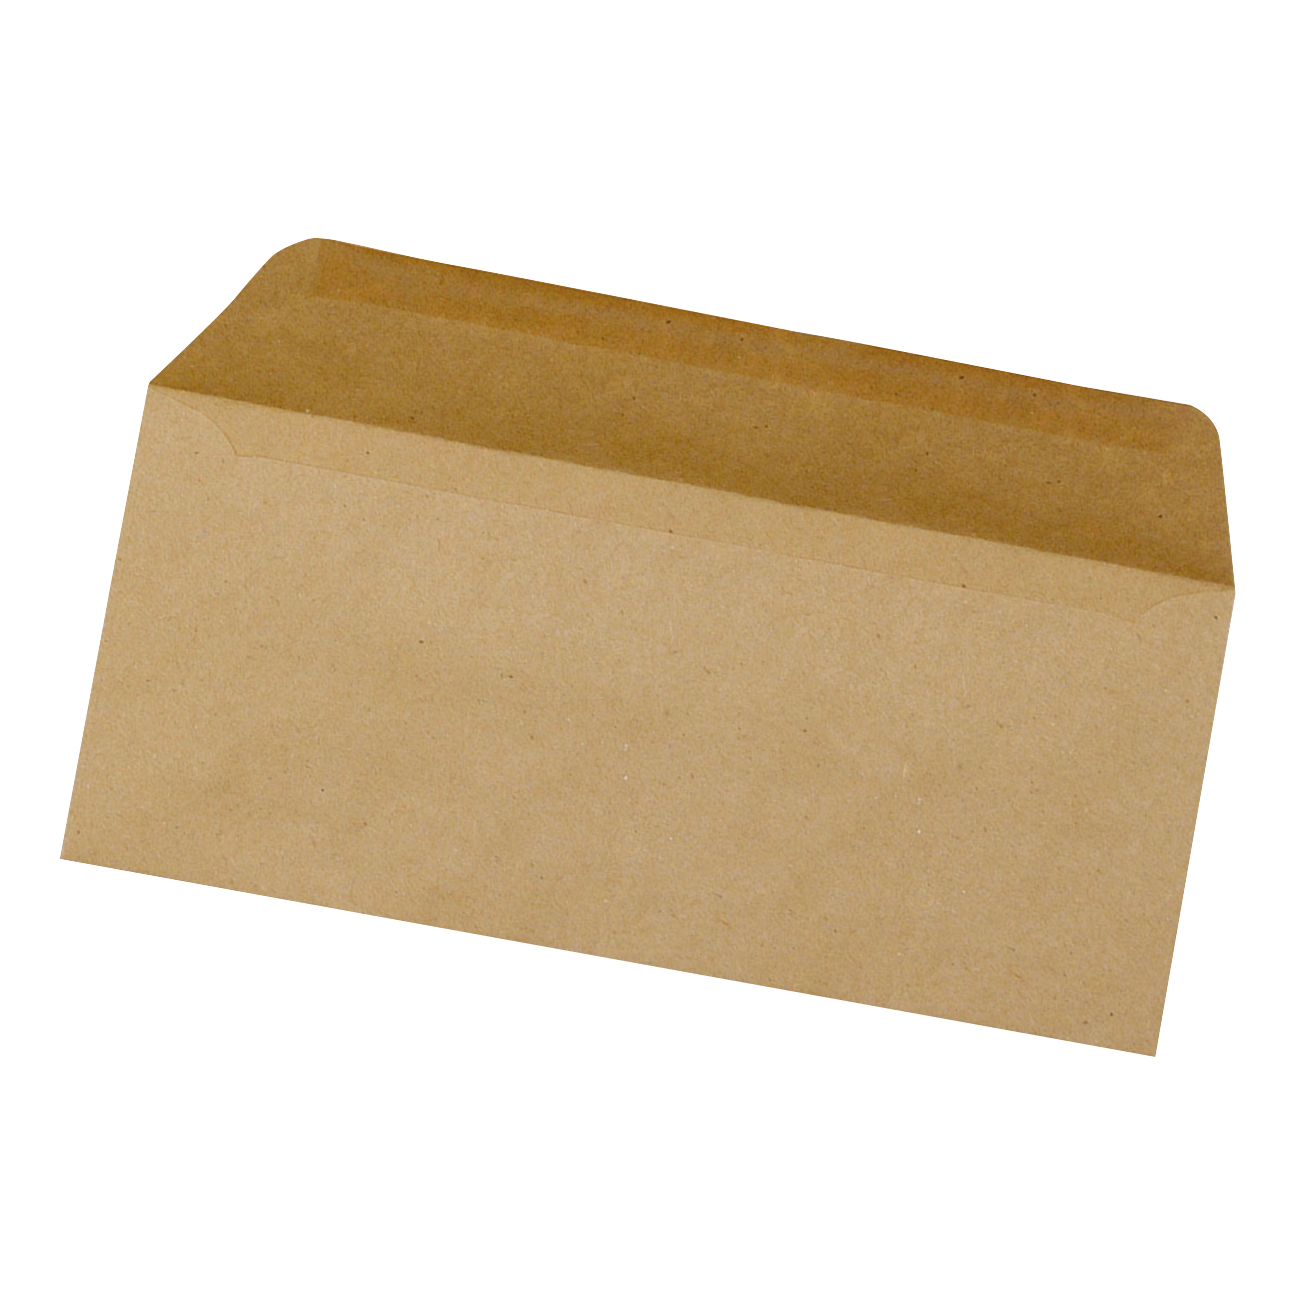 DL 5 Star Office Envelopes FSC Wallet Recycled Lightweight Gummed 75gsm DL 220x110mm Manilla Pack 1000